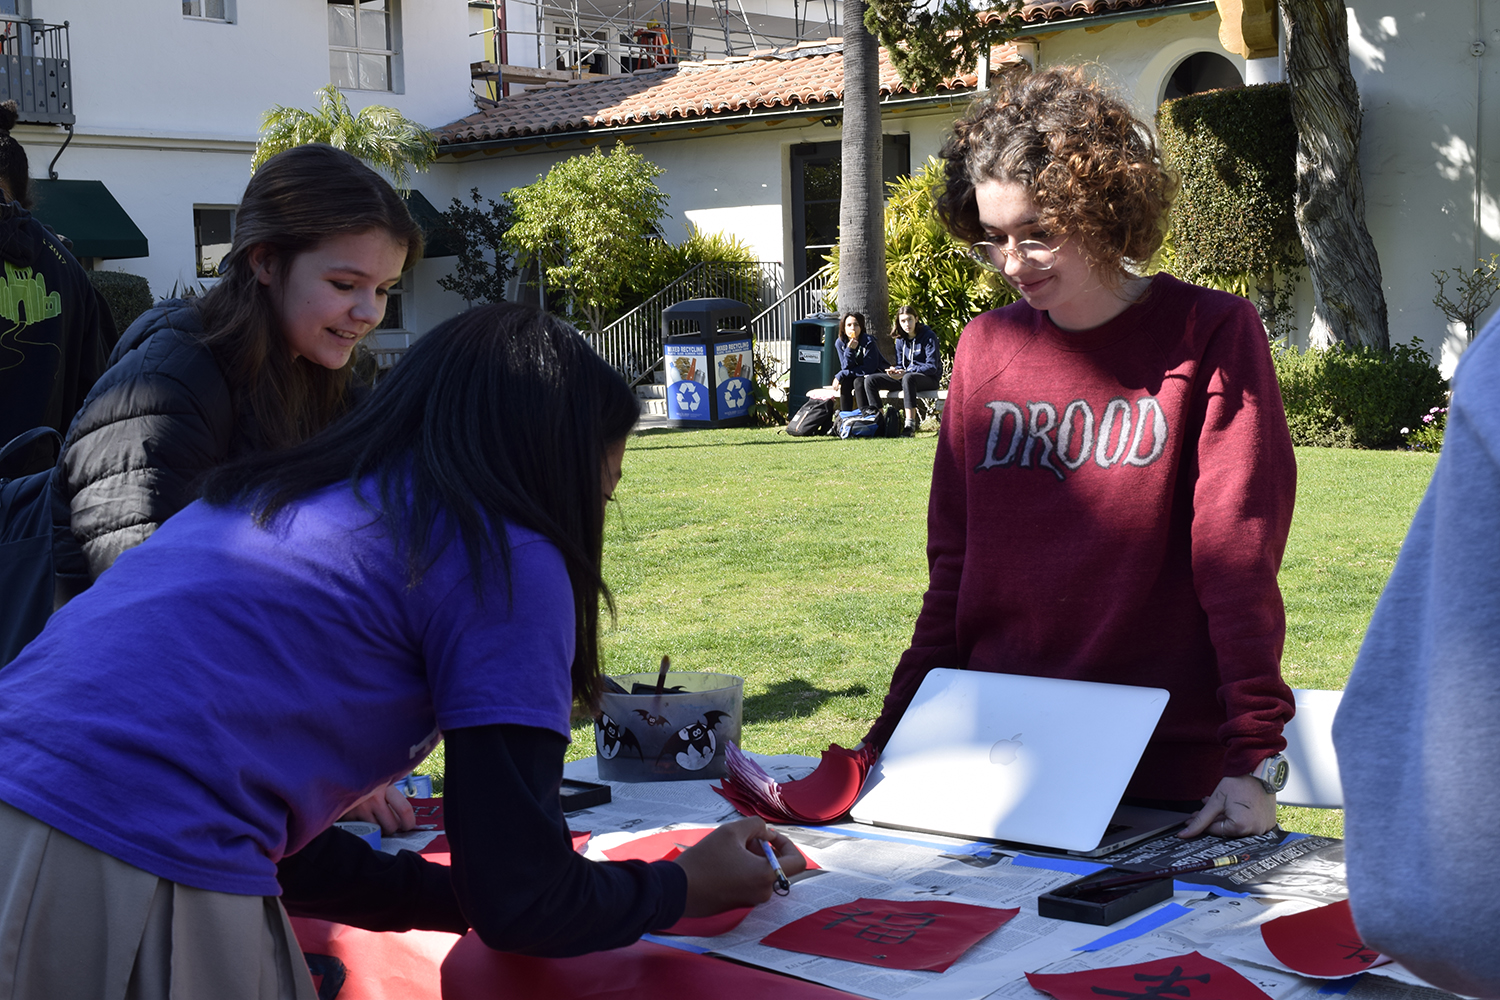 Chinese student Willa Frierson '20 teaches middle schoolers some basic Chinese characters. This booth was one of many at the celebration on Friday, Feb. 8.